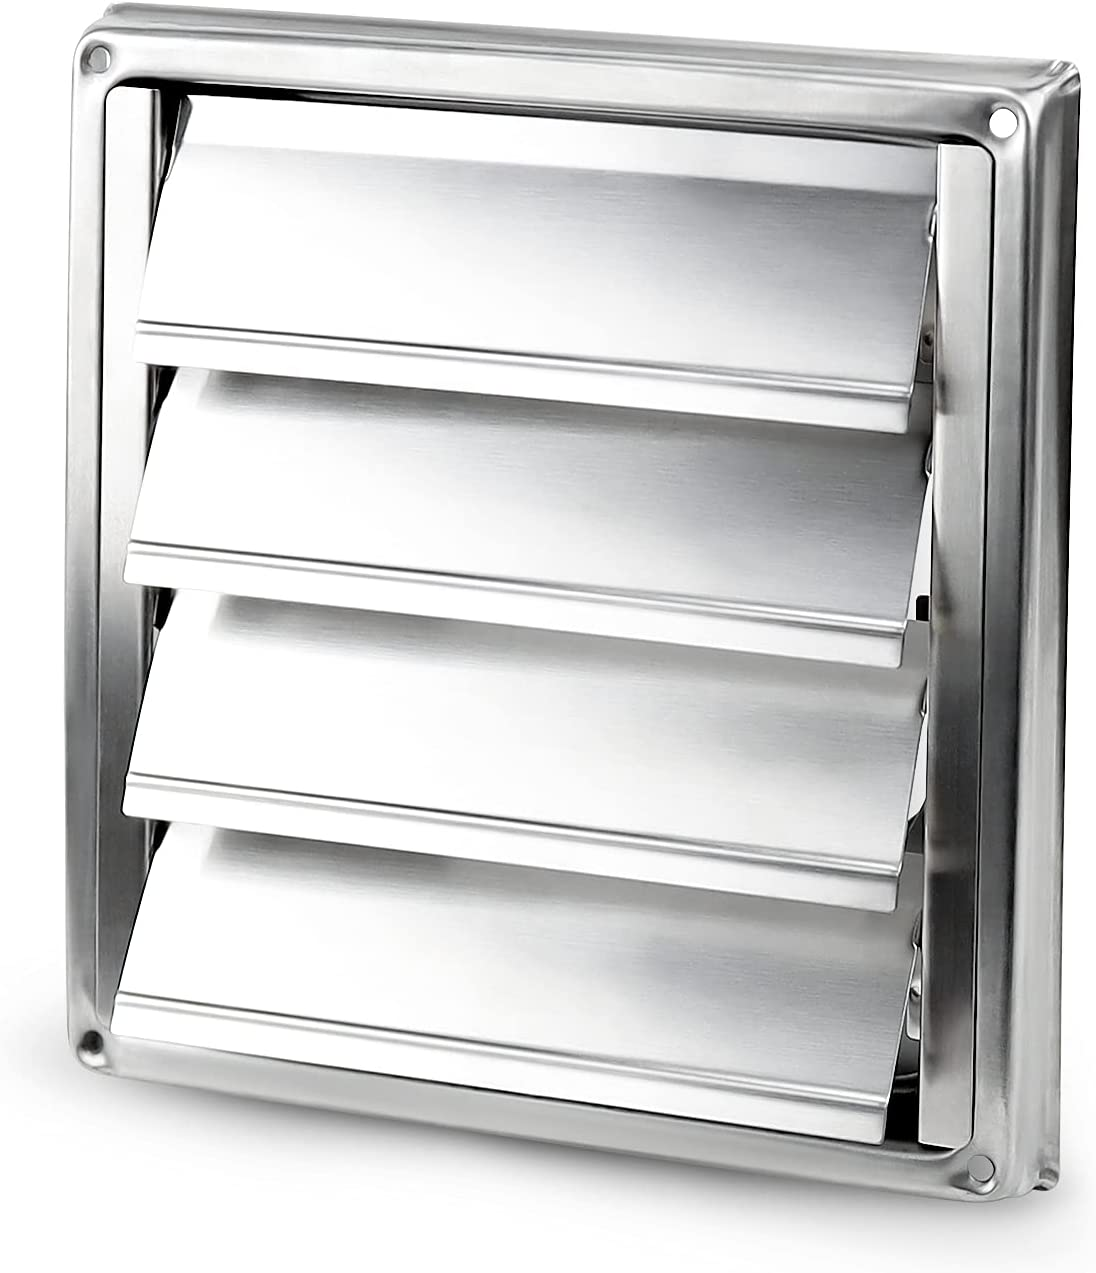 Cenipar Dryer Vent Cover 304 Stainless Outside Steel Limited time trial price Challenge the lowest price of Japan